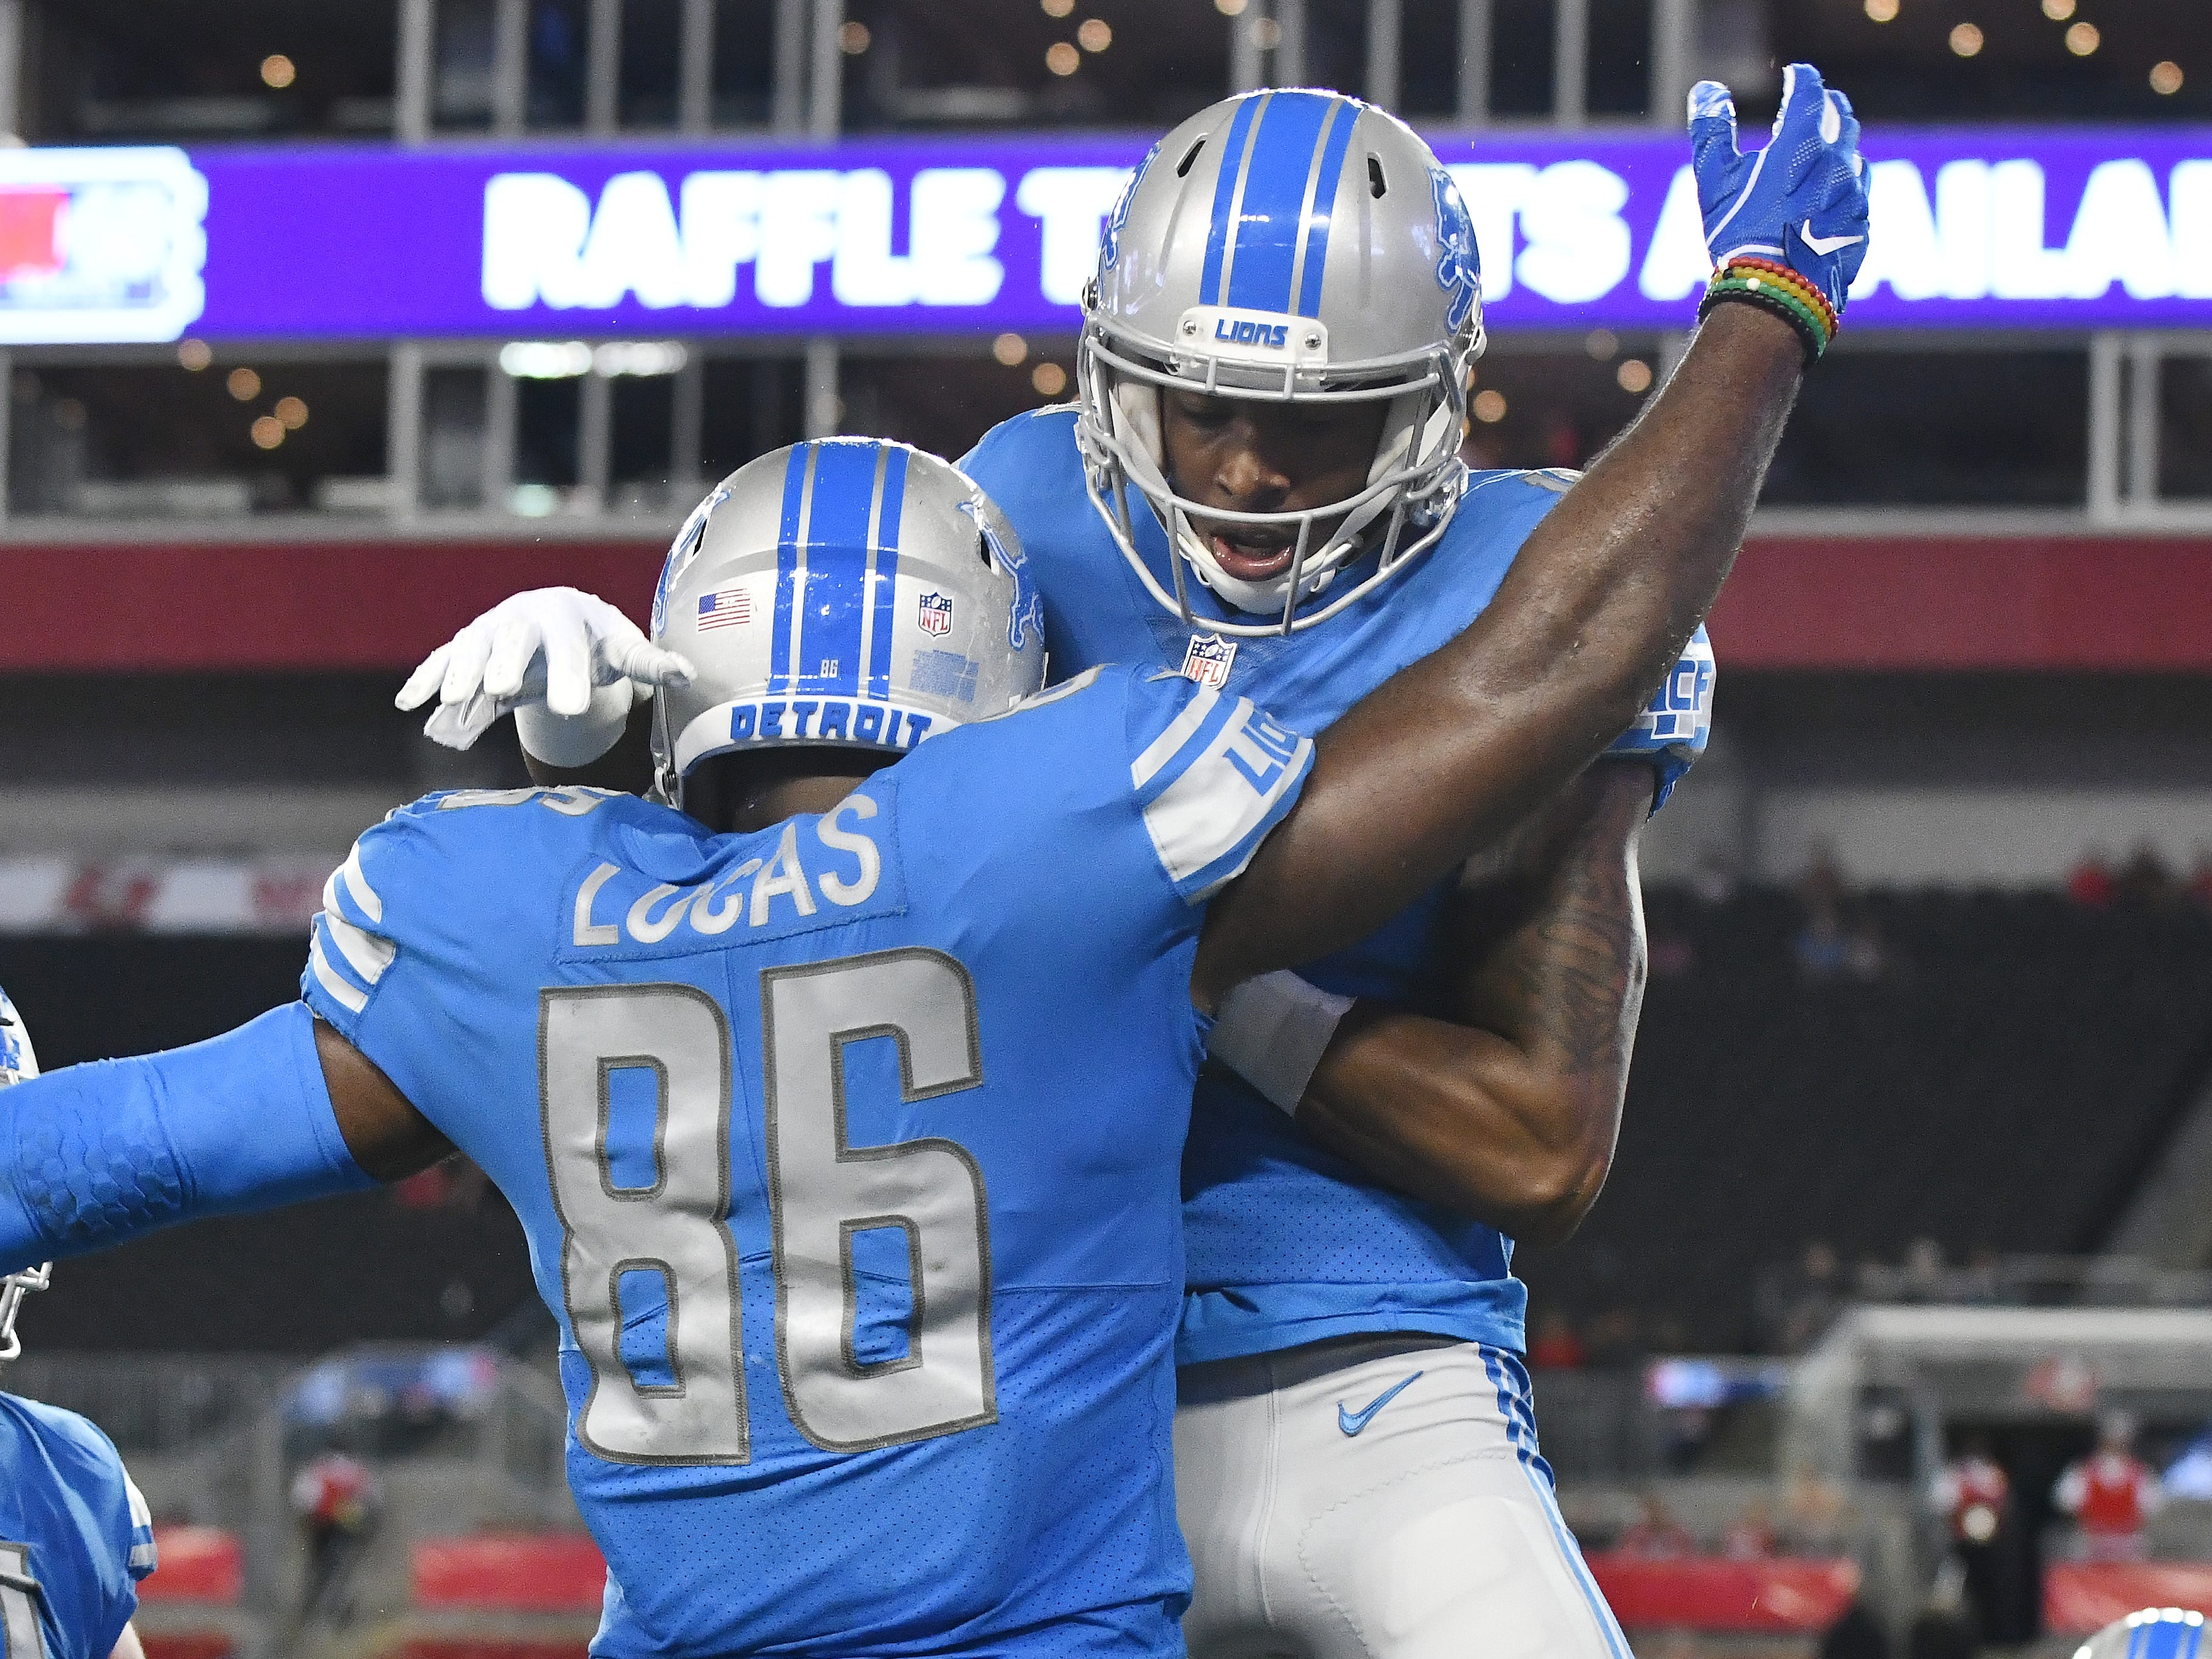 Lions' Marcus Lucas celebrates with Teo Redding and teammates after running in the go ahead touchdown in the fourth quarter.